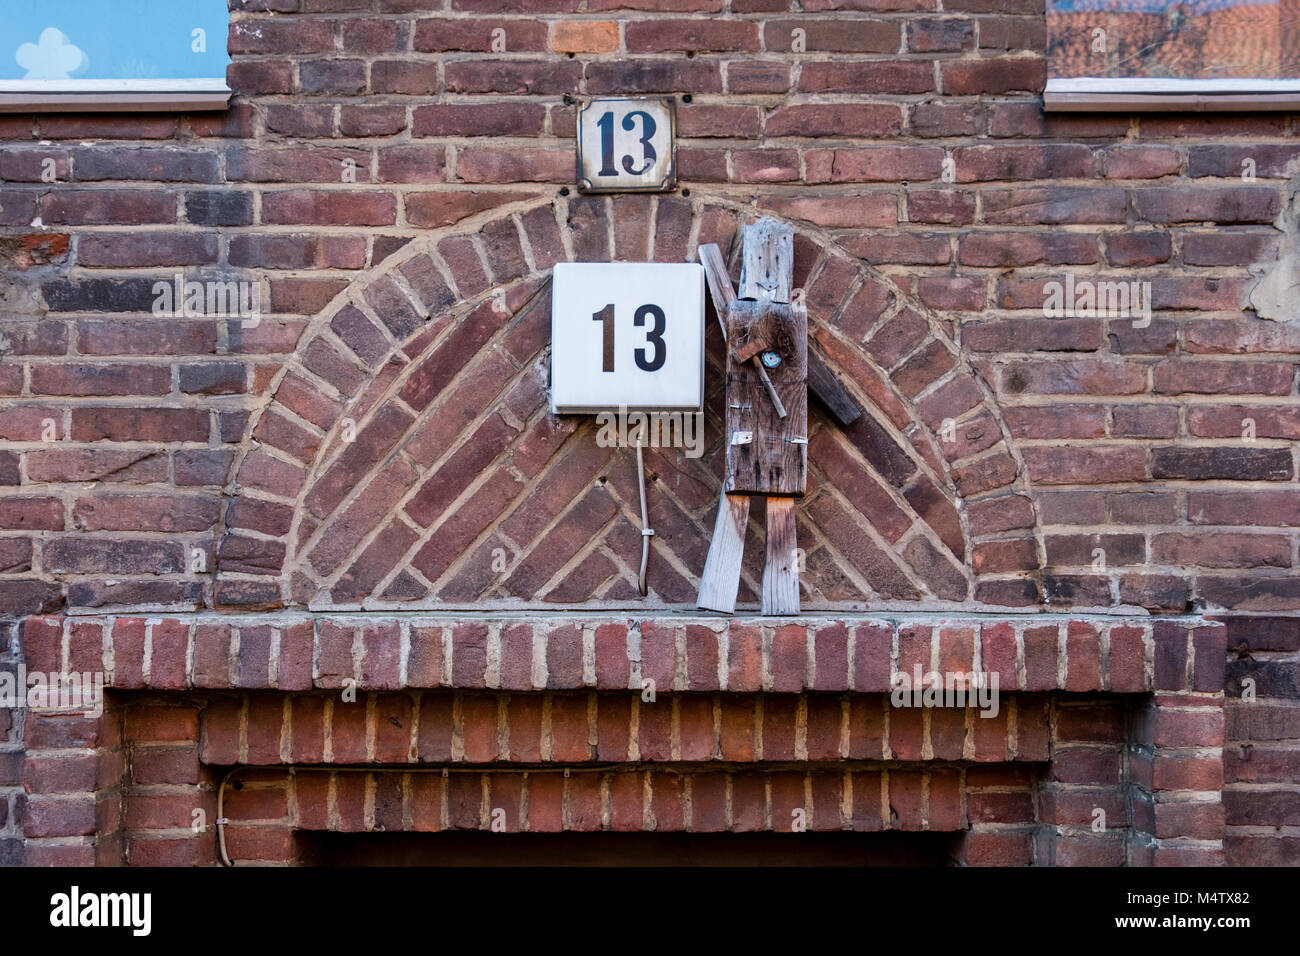 Berlin home. Building detail, Klinker brick wall with naive wooden sculpture of man on house number thirteen. - Stock Image